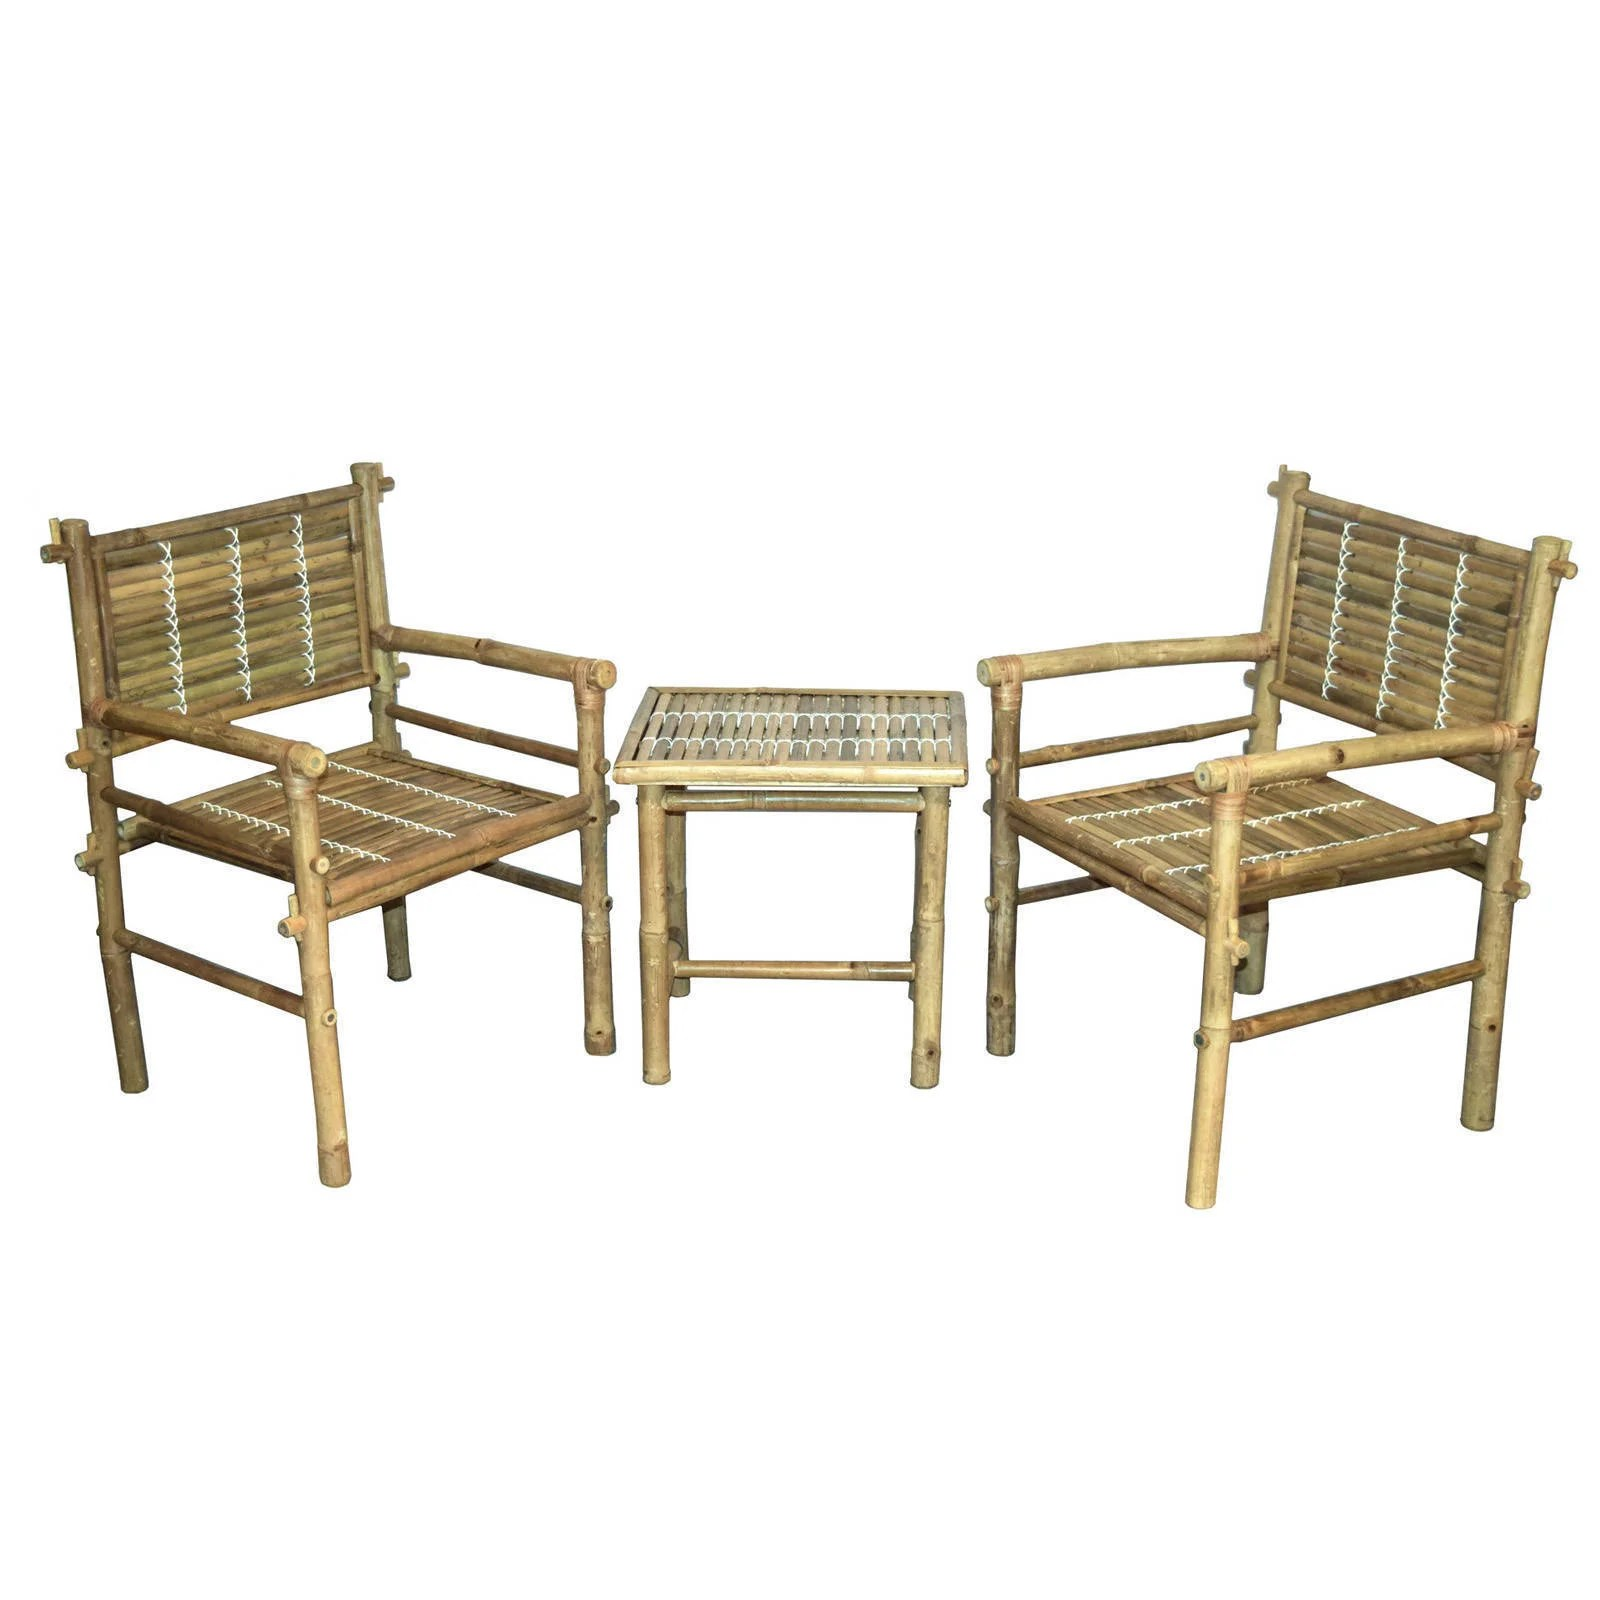 Bamboo Chairs Handmade 3 Piece Natural Bamboo Chairs And Table Set Vietnam